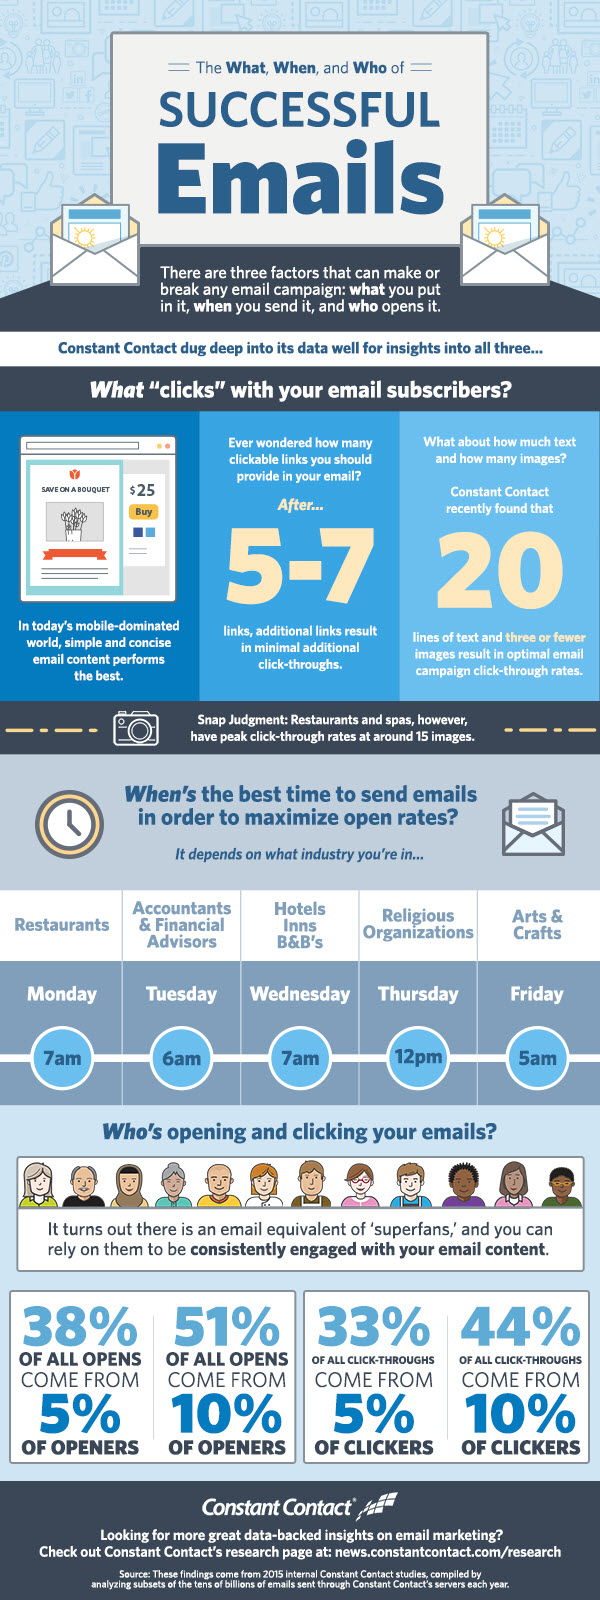 Infographic – The What, When, and Who of Successful Emails v